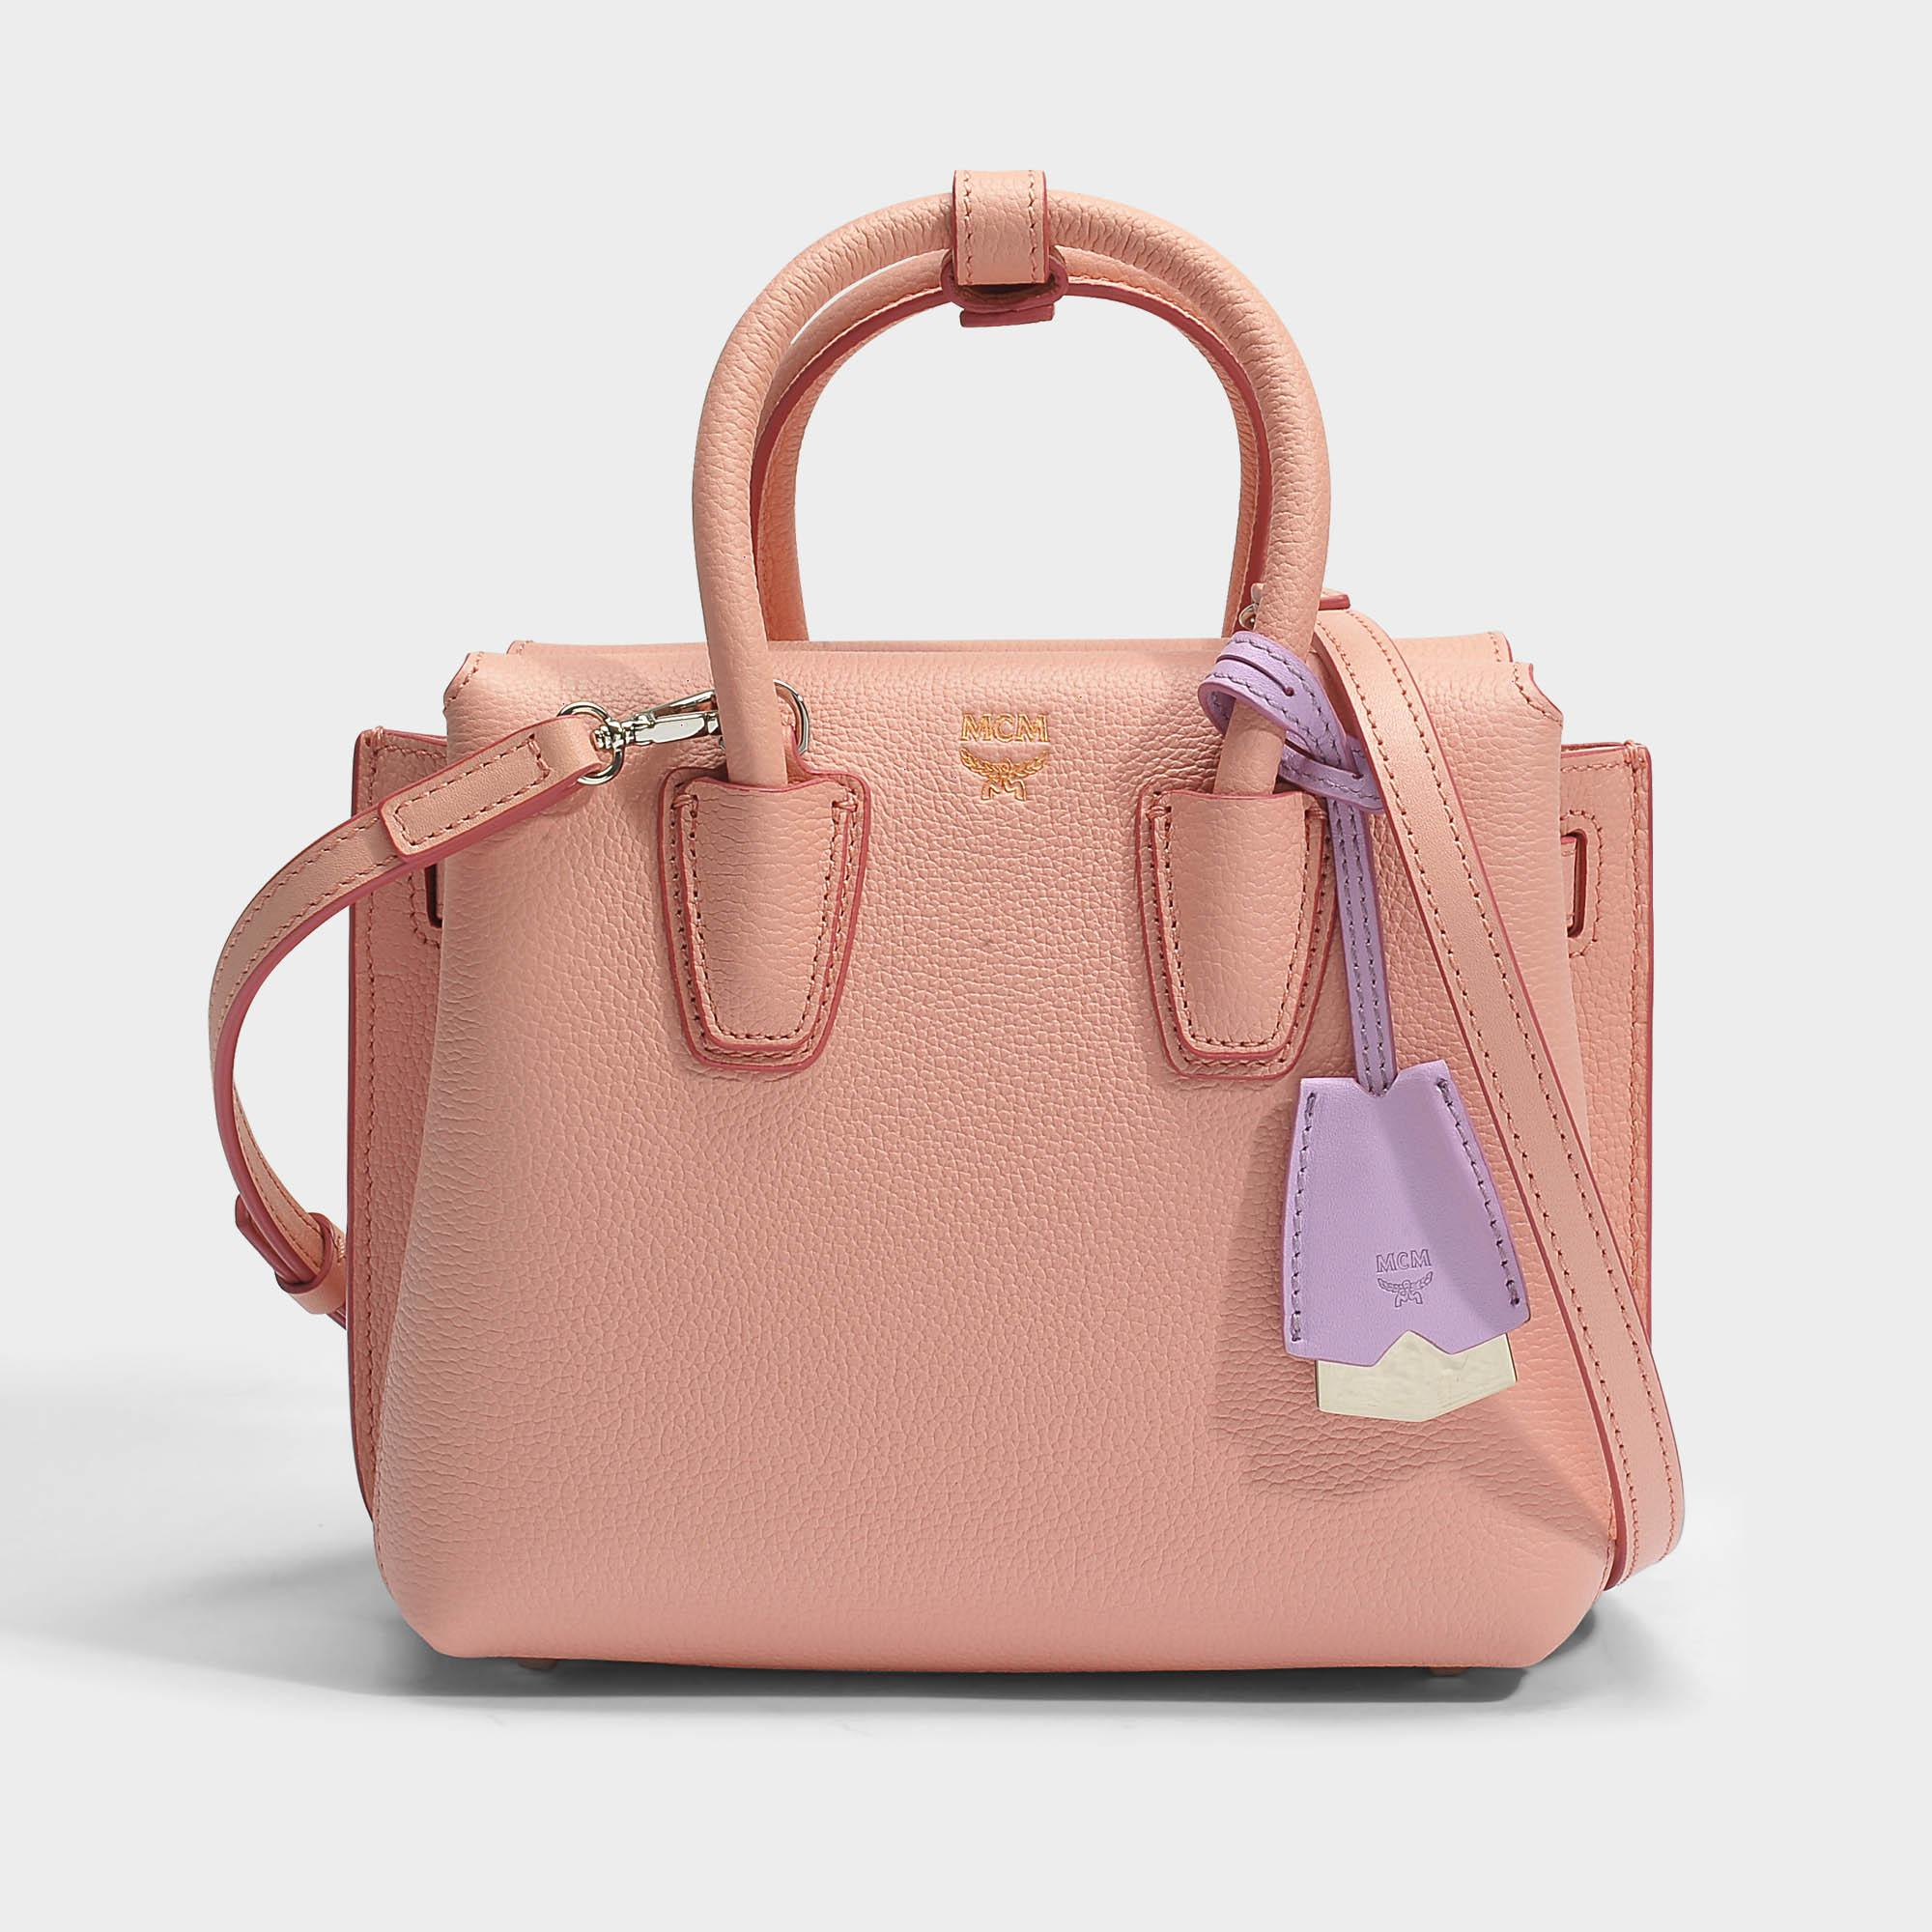 Recommend For Sale Latest Collections Milla Small Tote Bag in Blush Pink Park Avenue Leather MCM lMPwoo6Rw